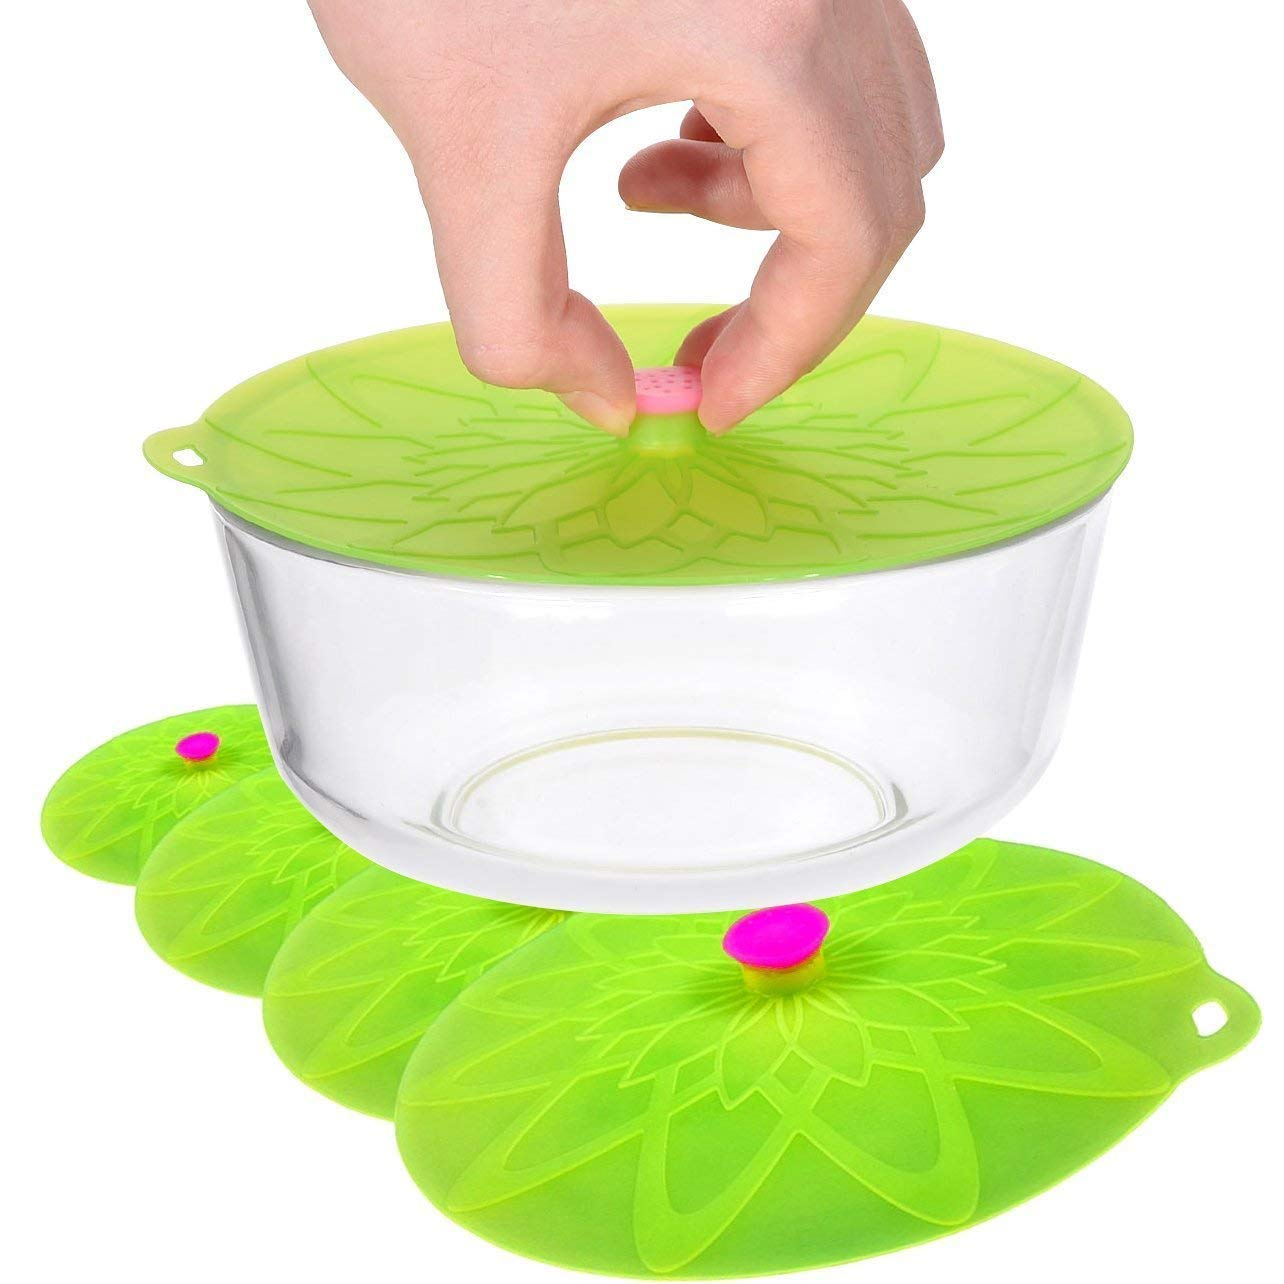 Kuke Silicone Suction Lids Food Bowl Covers microwaves, Pots, Pans, Mugs Containers - BPA Free,Durable, Dishwasher-Safe,Leak- Proof